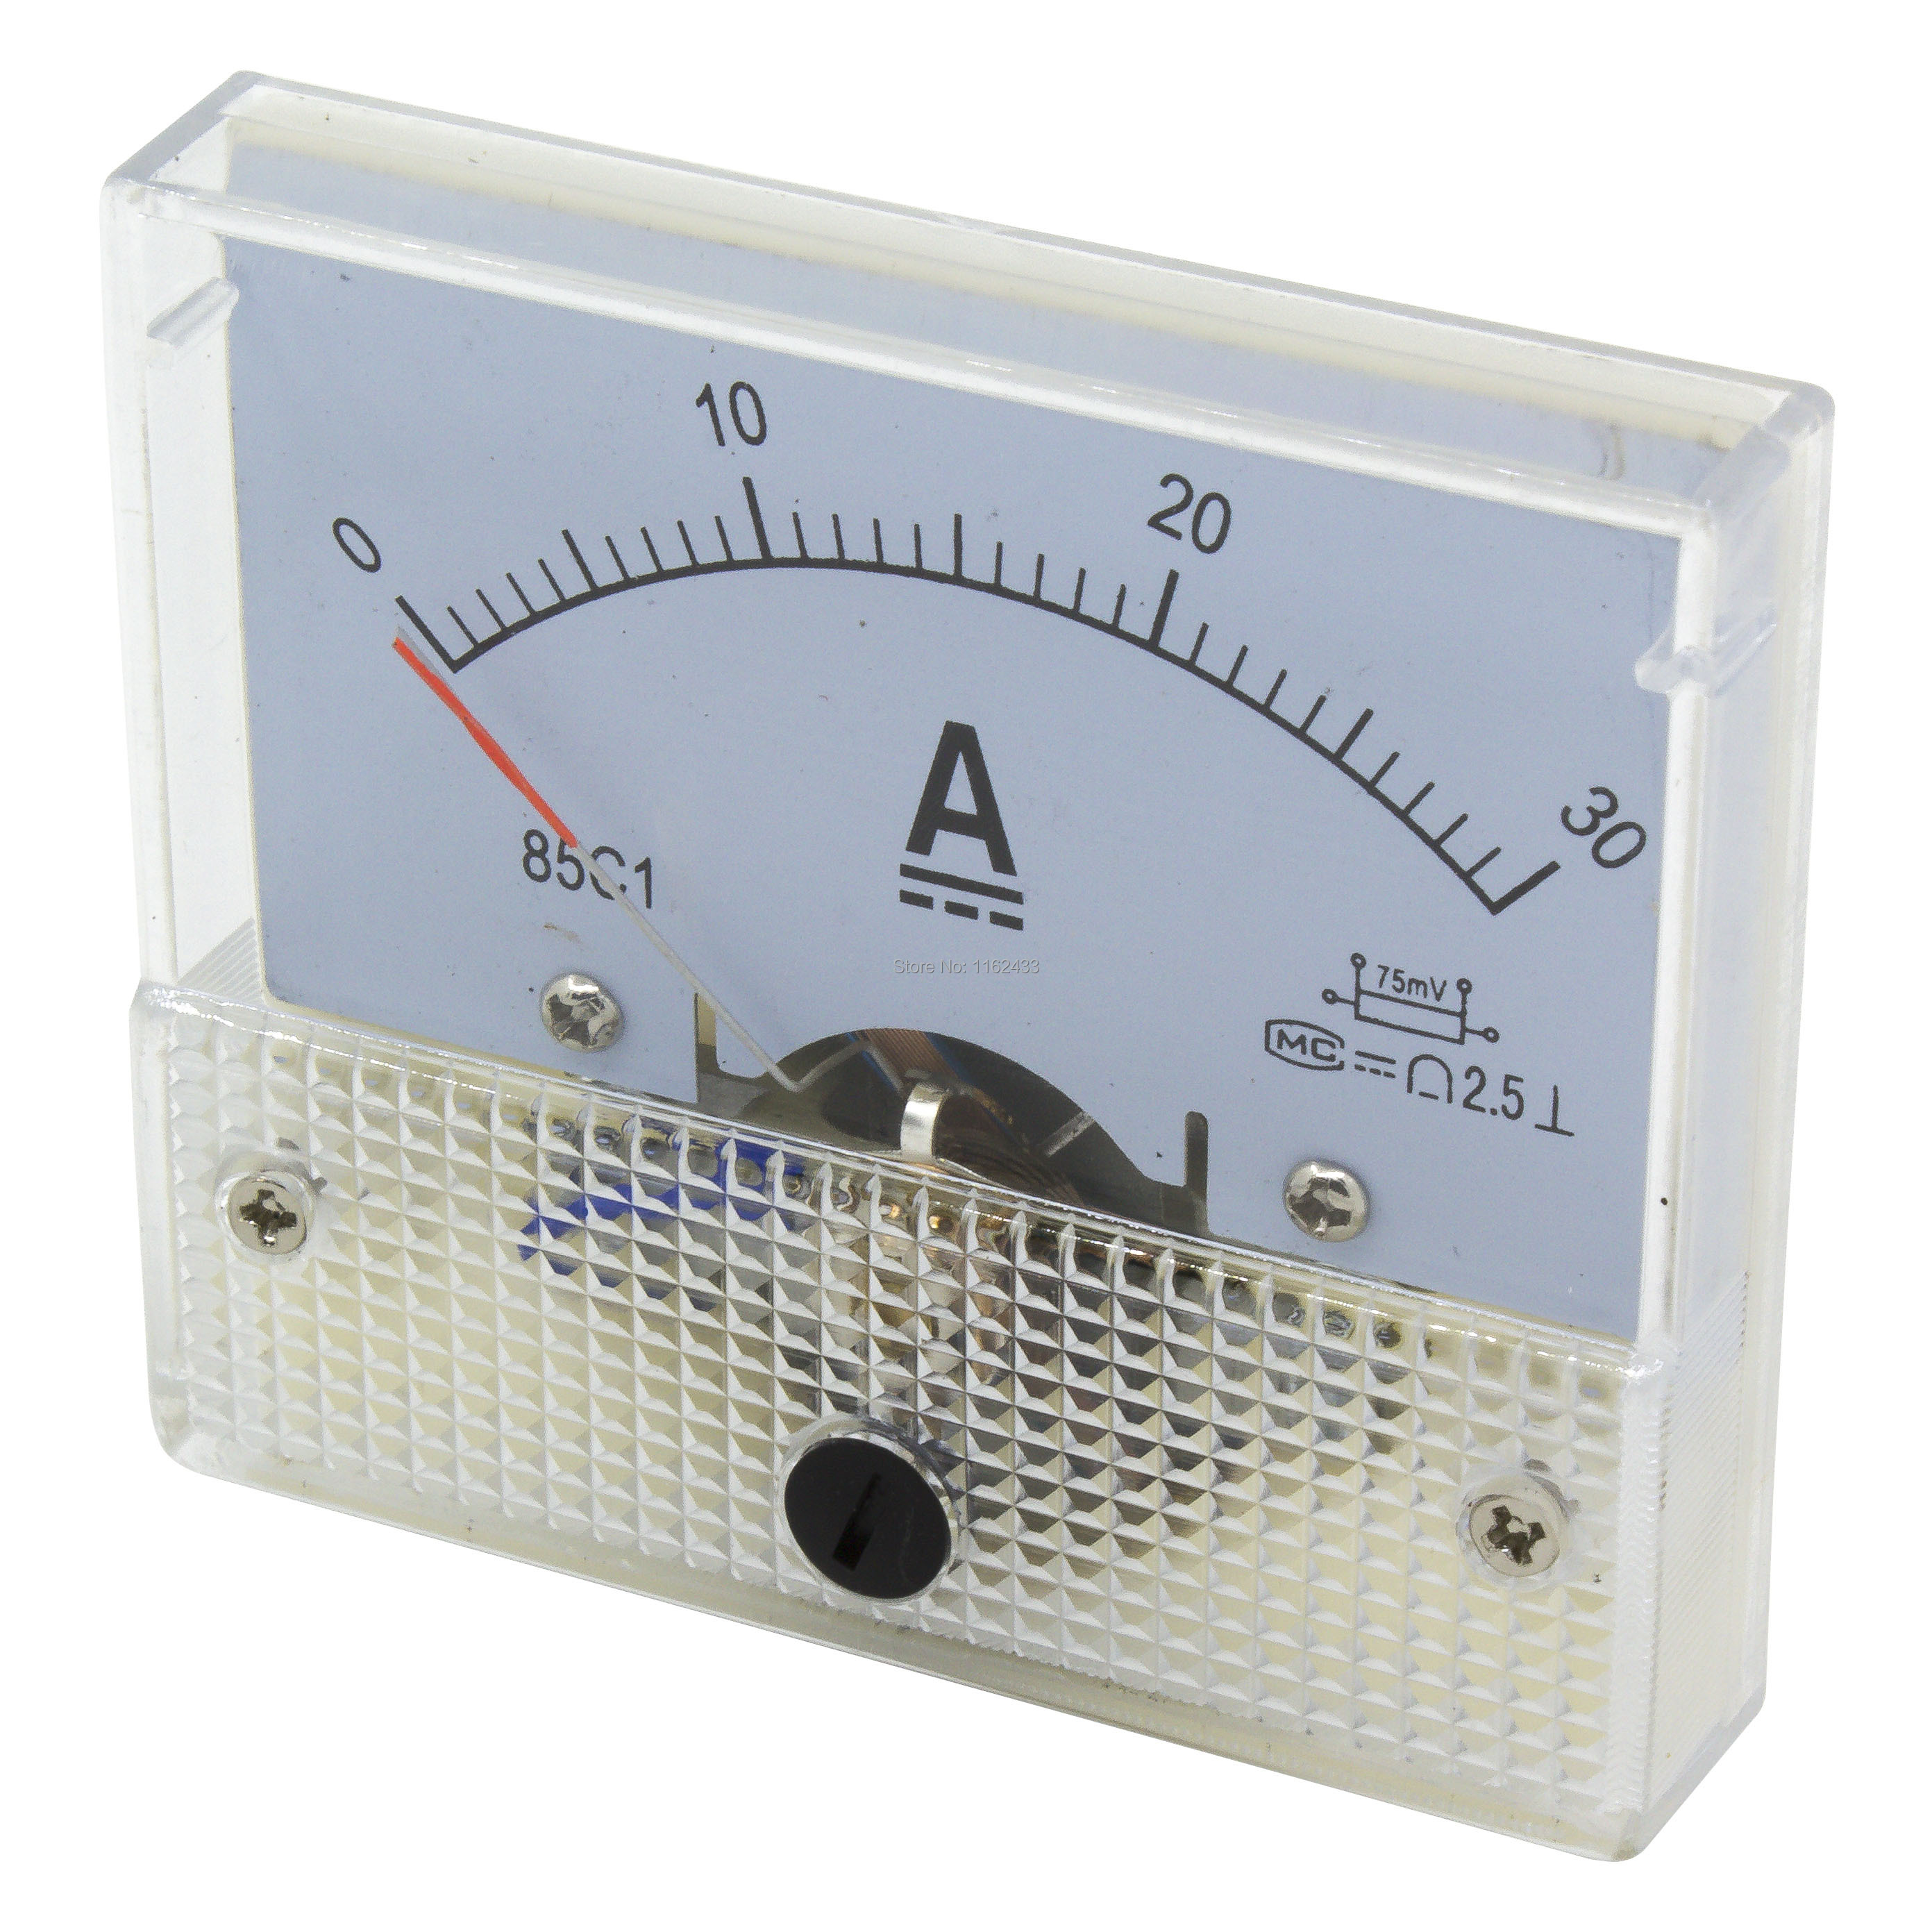 85C1-A <font><b>DC</b></font> pointer ammeter current meter 15A 20A 30A 50A 75A <font><b>100A</b></font> 150A 200A 300A need shunt 85C1 analog AMP meter 64*56 mm size image